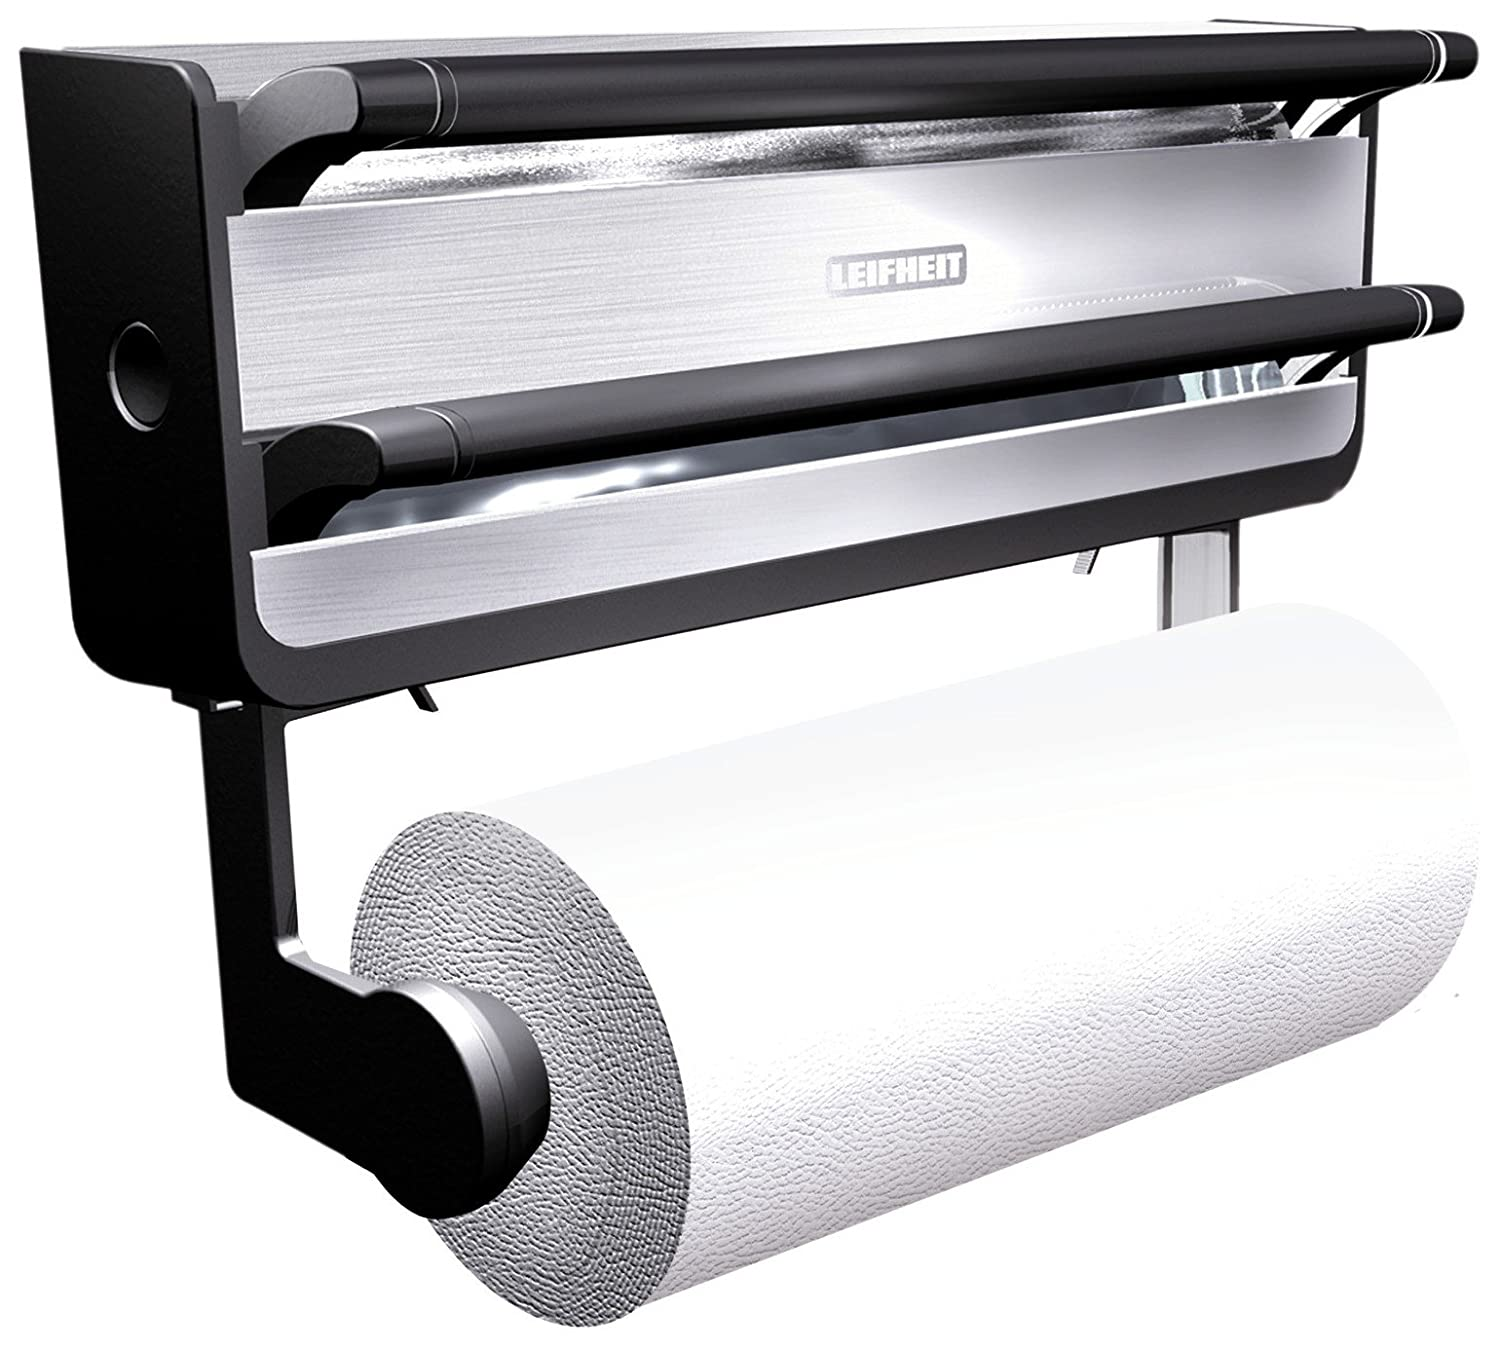 Plastic Kitchen Roll Holder. Amazing Grey Kitchen Roll Holder Or Cup ...